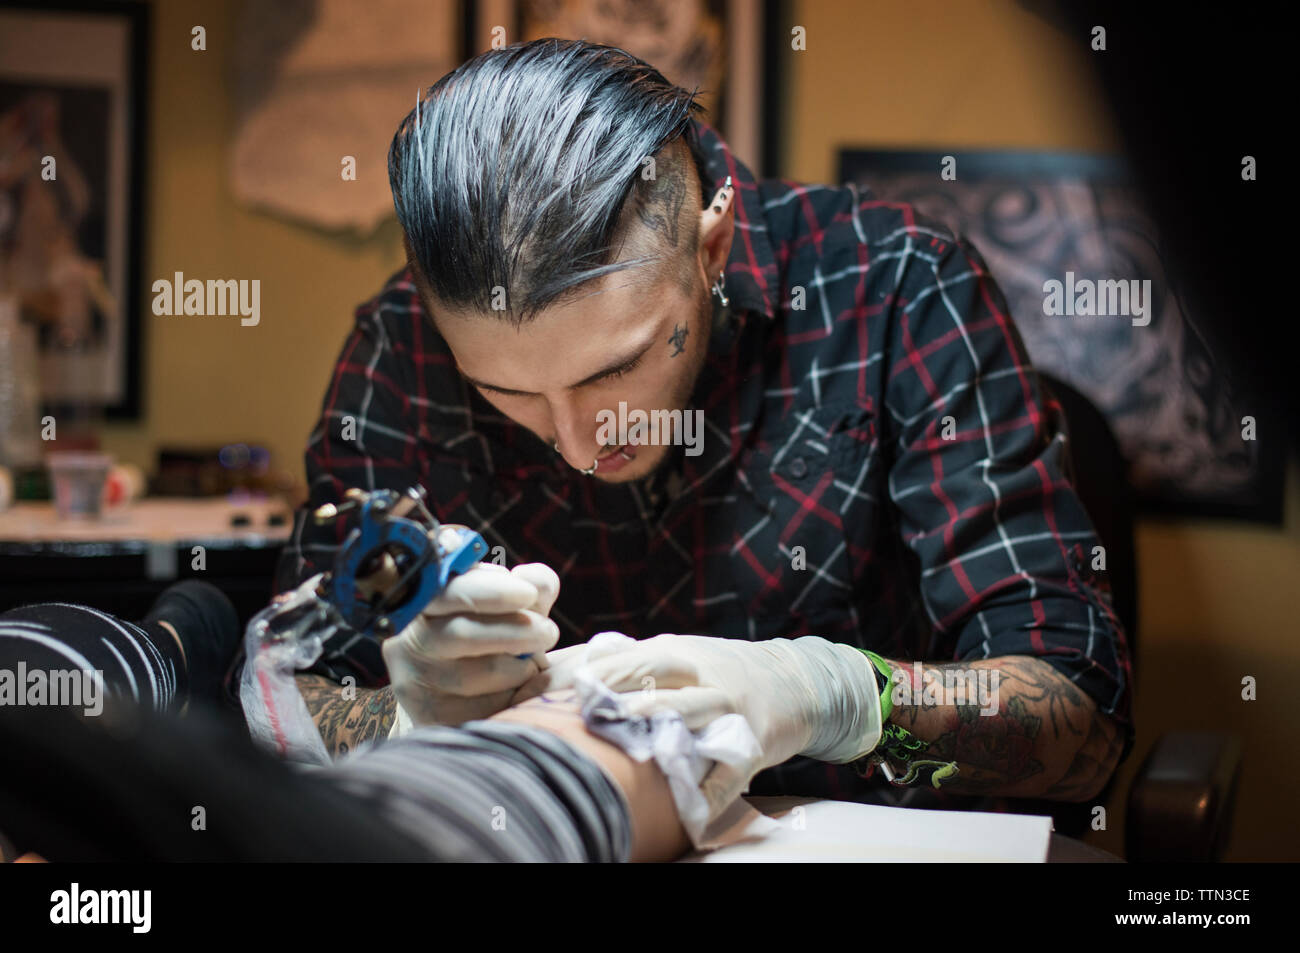 Male tattoo artist tattooing female client in studio - Stock Image